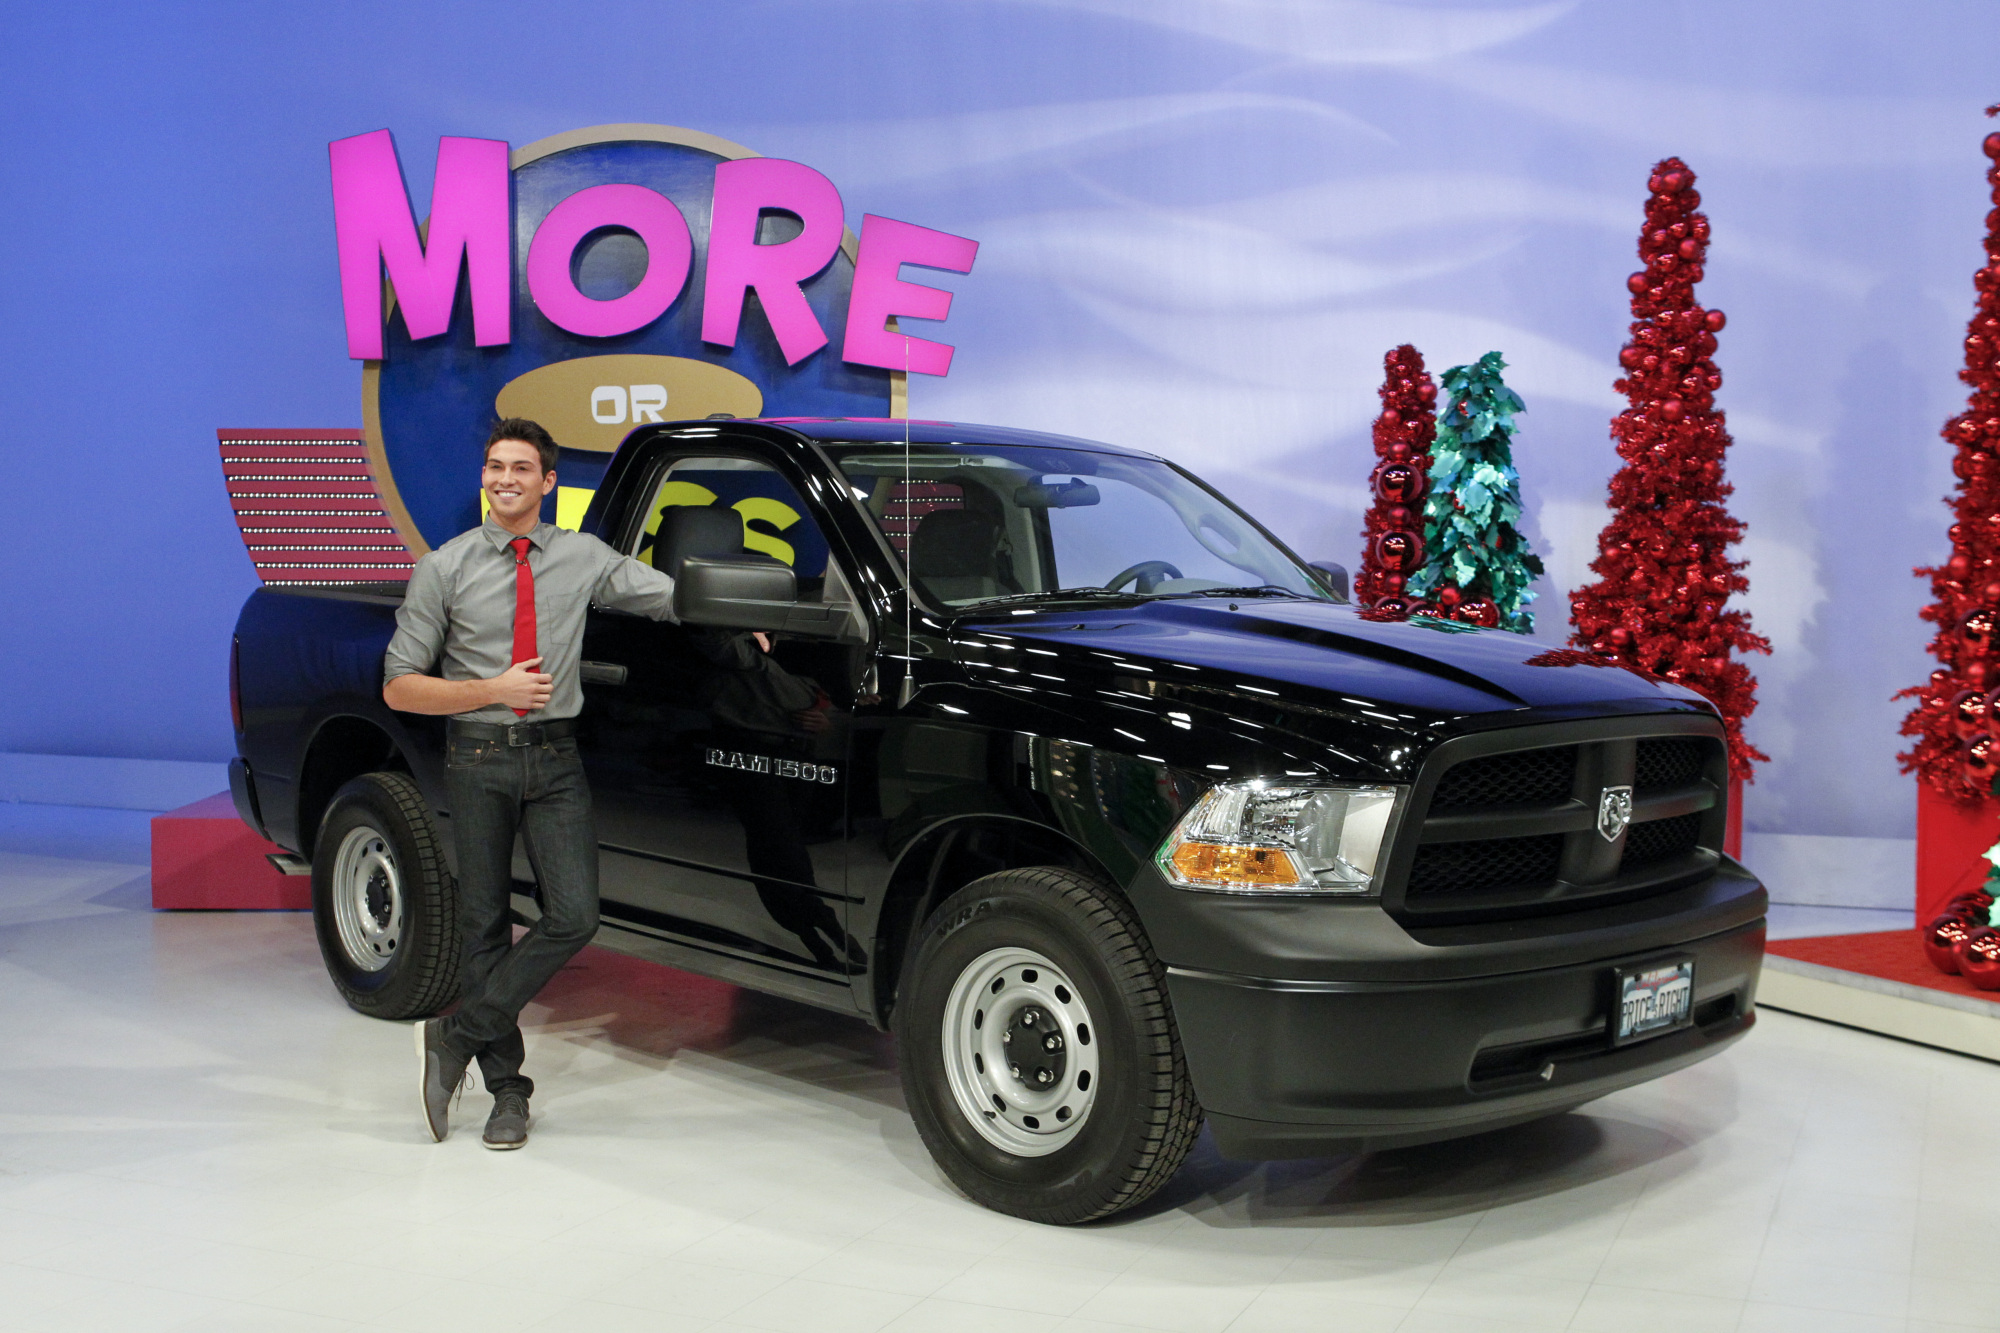 Rob and a New Truck